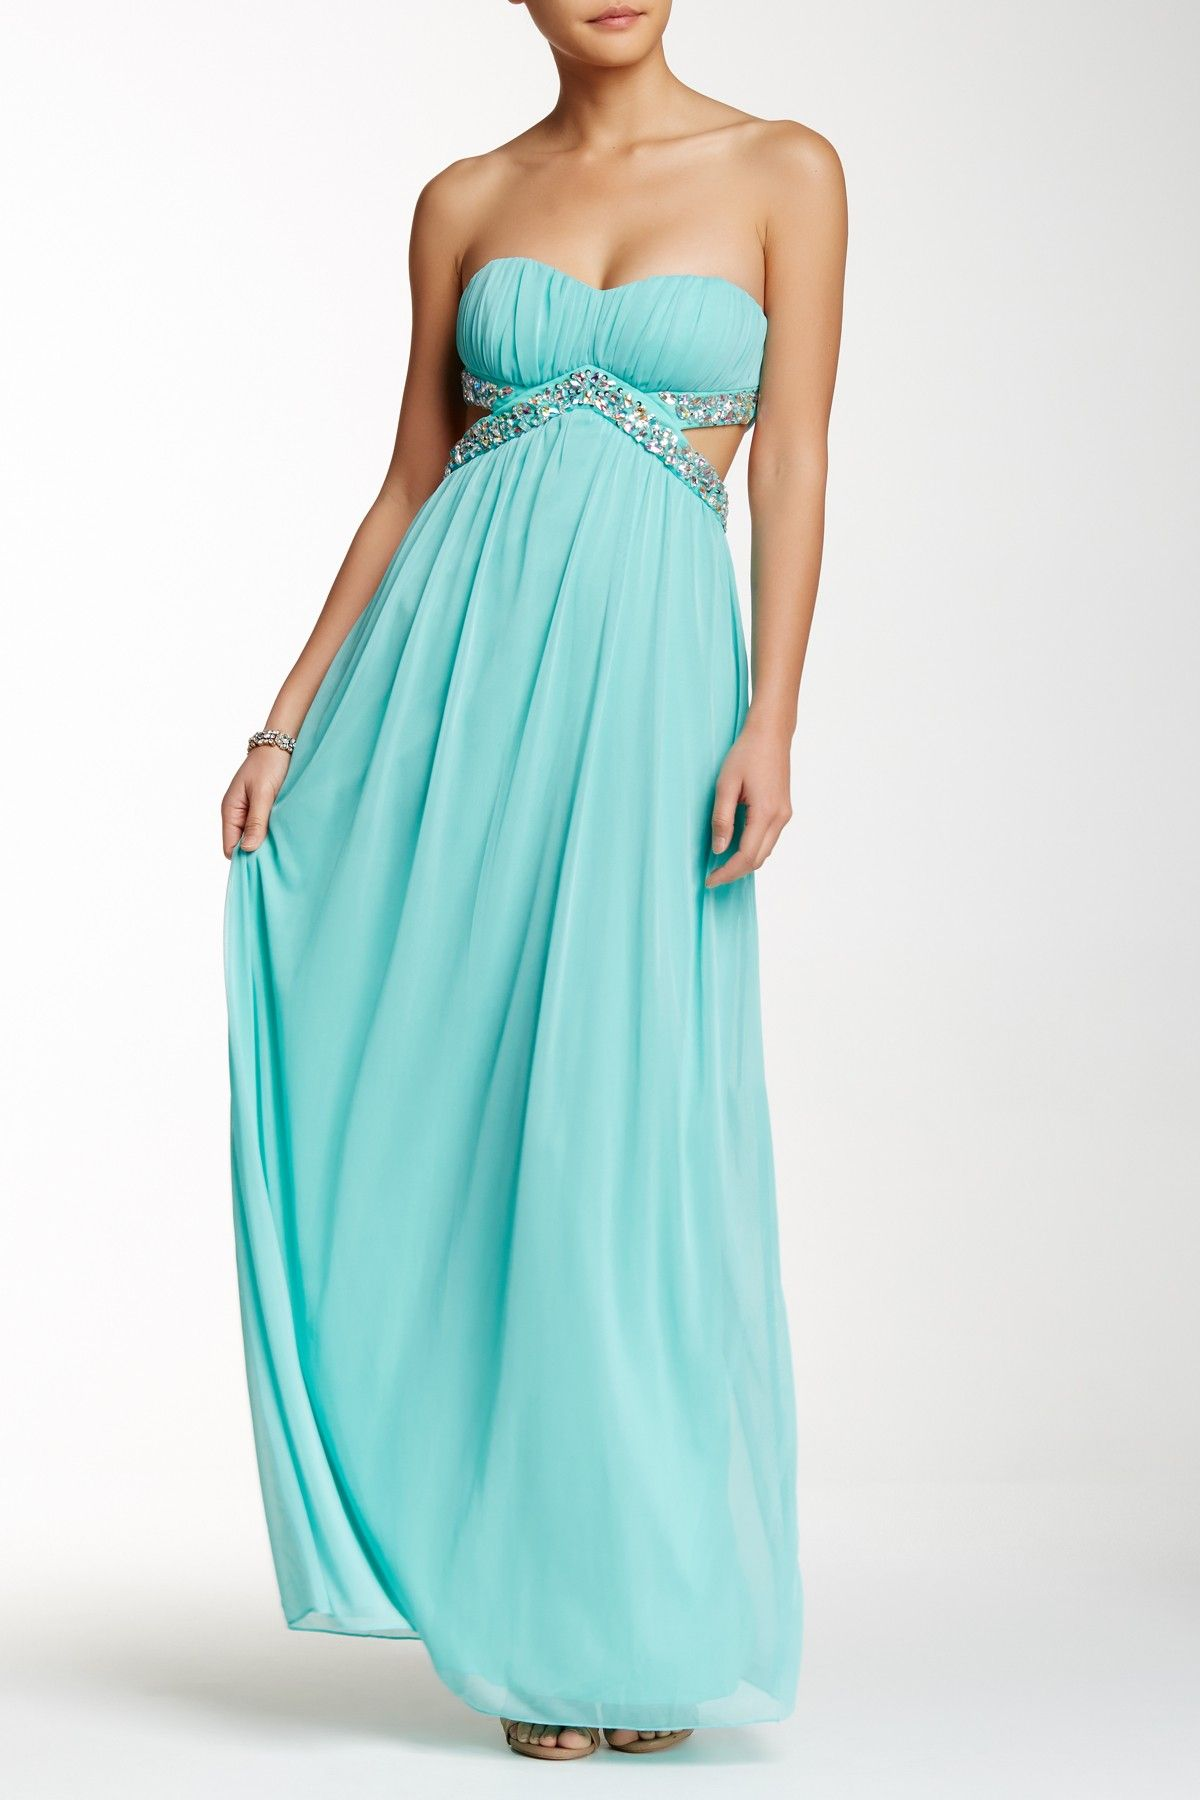 Strapless Bodice Cutout Mesh Prom Dress | Prom, Bodice and Teal